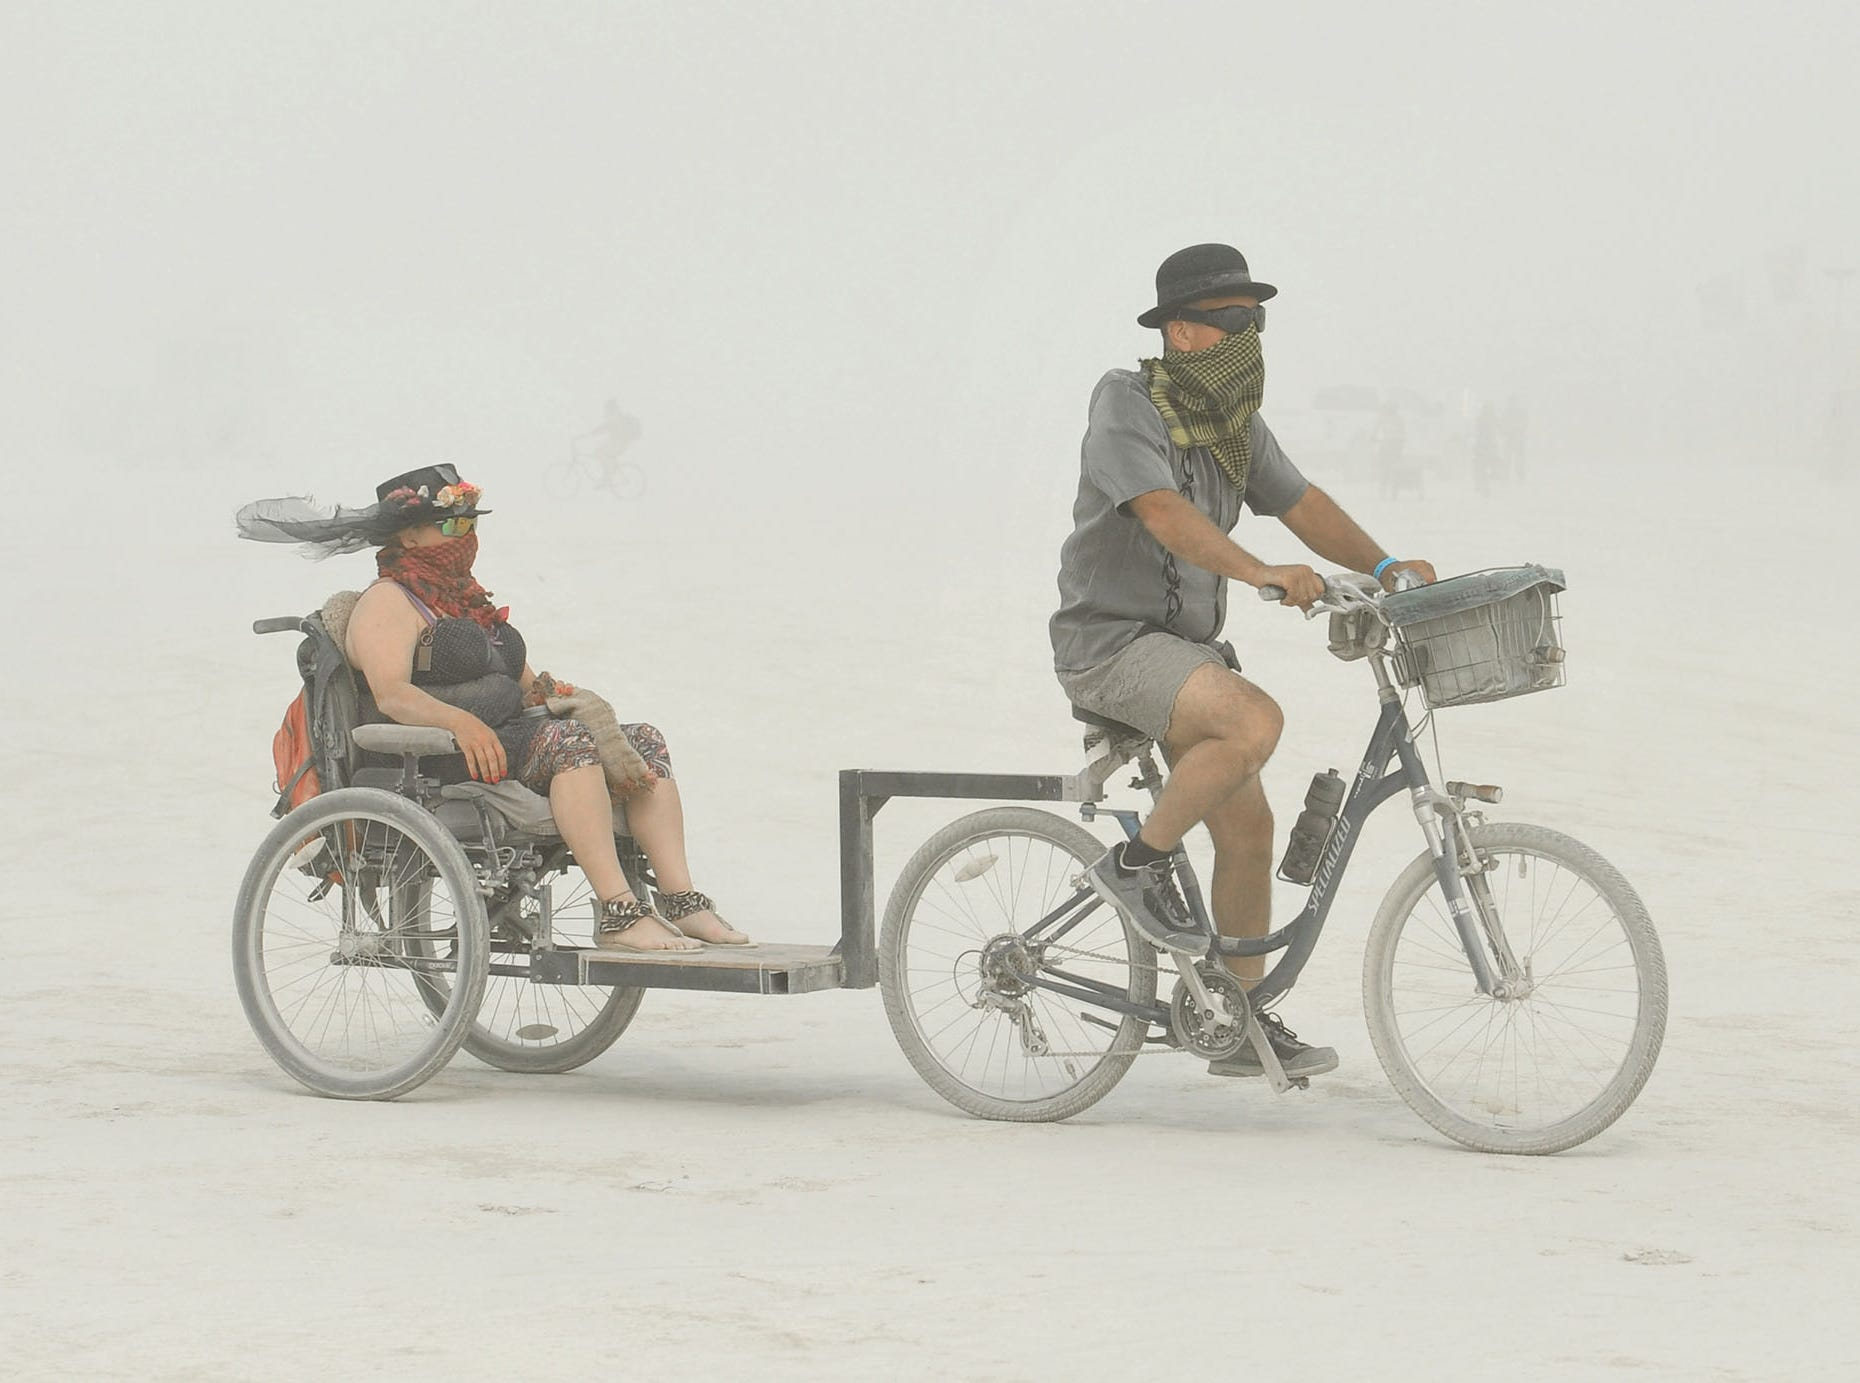 A couple go for a ride in a dust storm Sunday, Aug. 26, 2018 at Burning Man in the Nevada desert. The storm lasted all day, causing the gates into the event to close while the storm lasted.